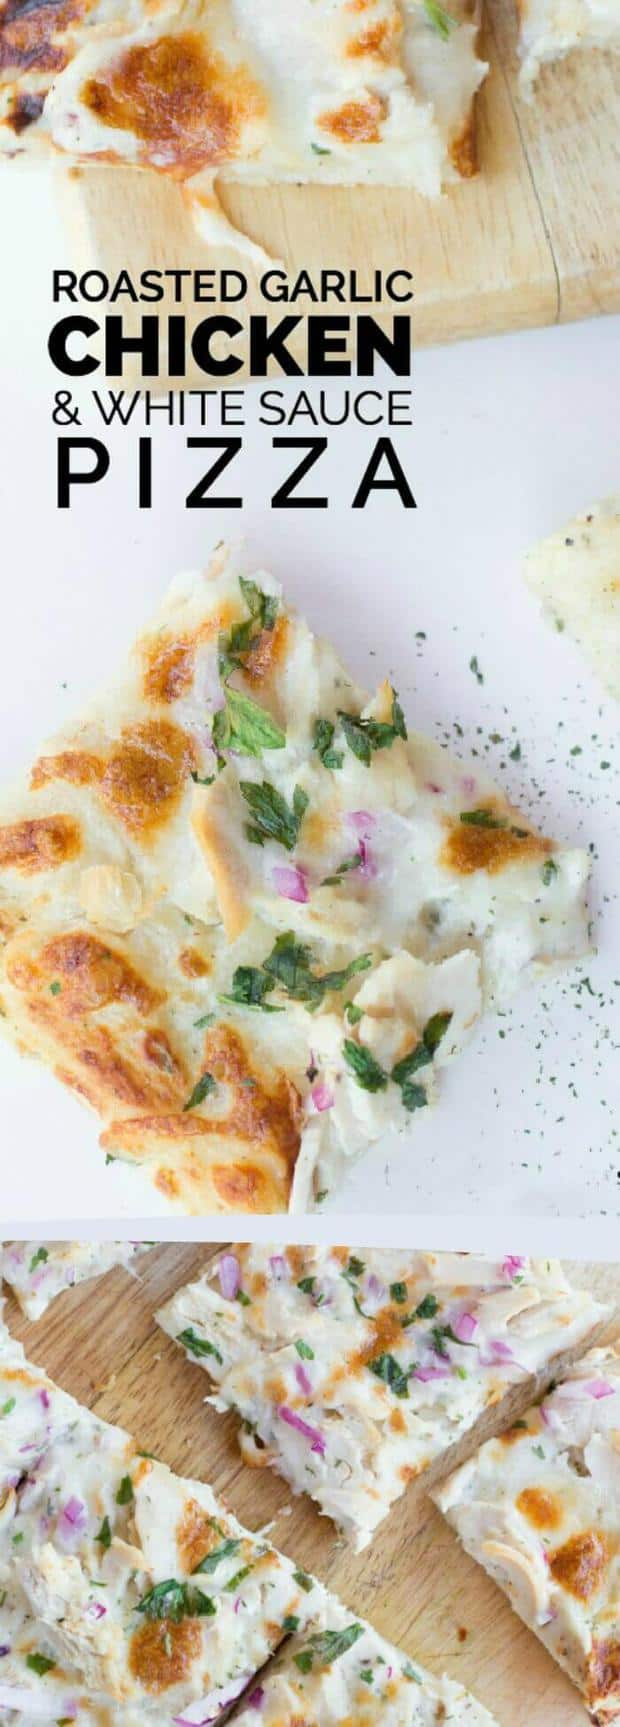 pinterest-garlic-chicken-pizza-recipe